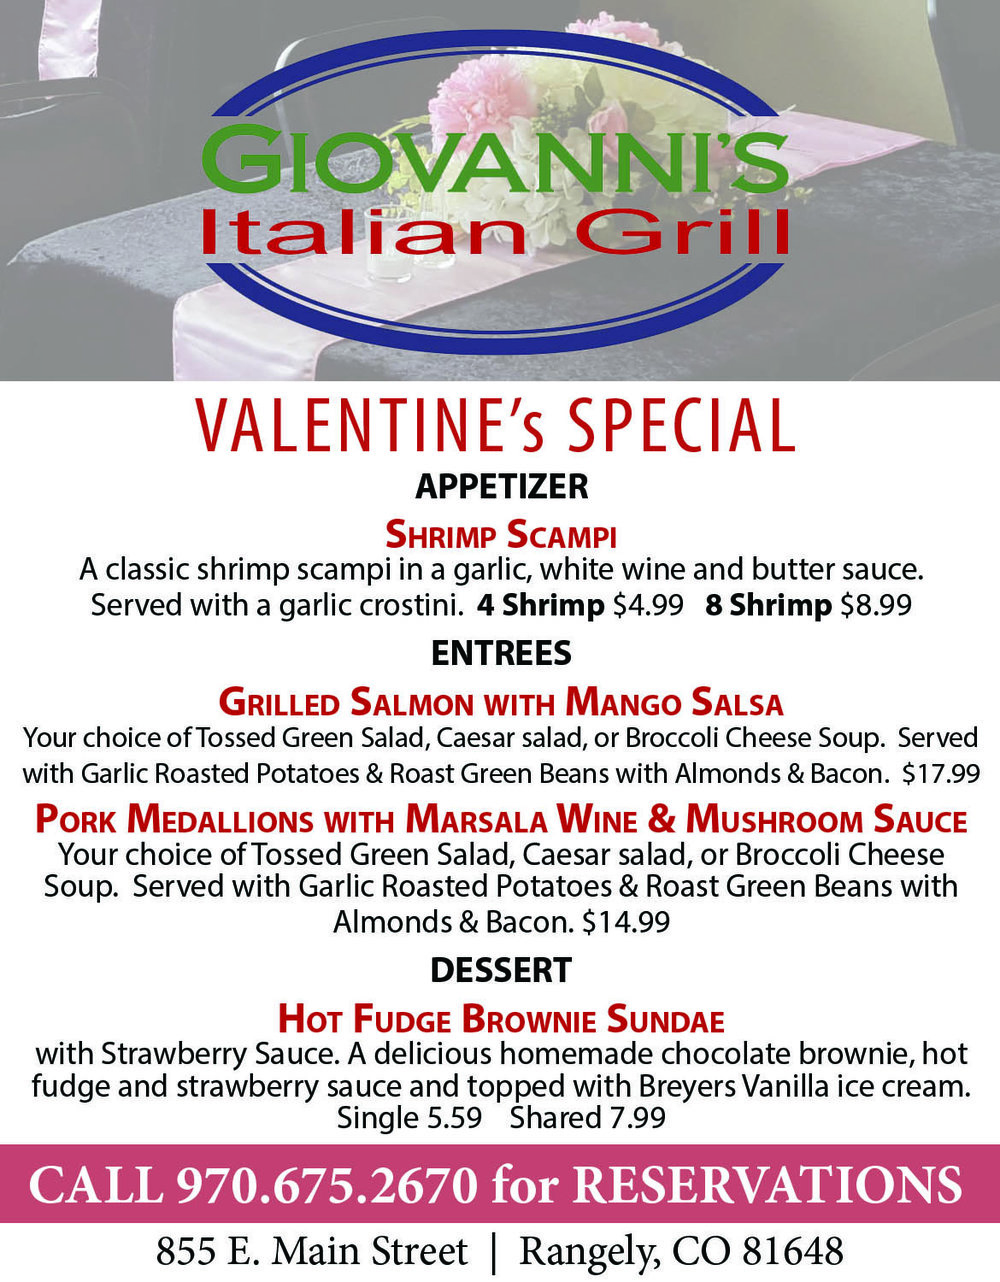 I don't know about you, but this menu is making me hungry already! Don't forget the Rec Center is offering their Date Night Daycare for Valentines!